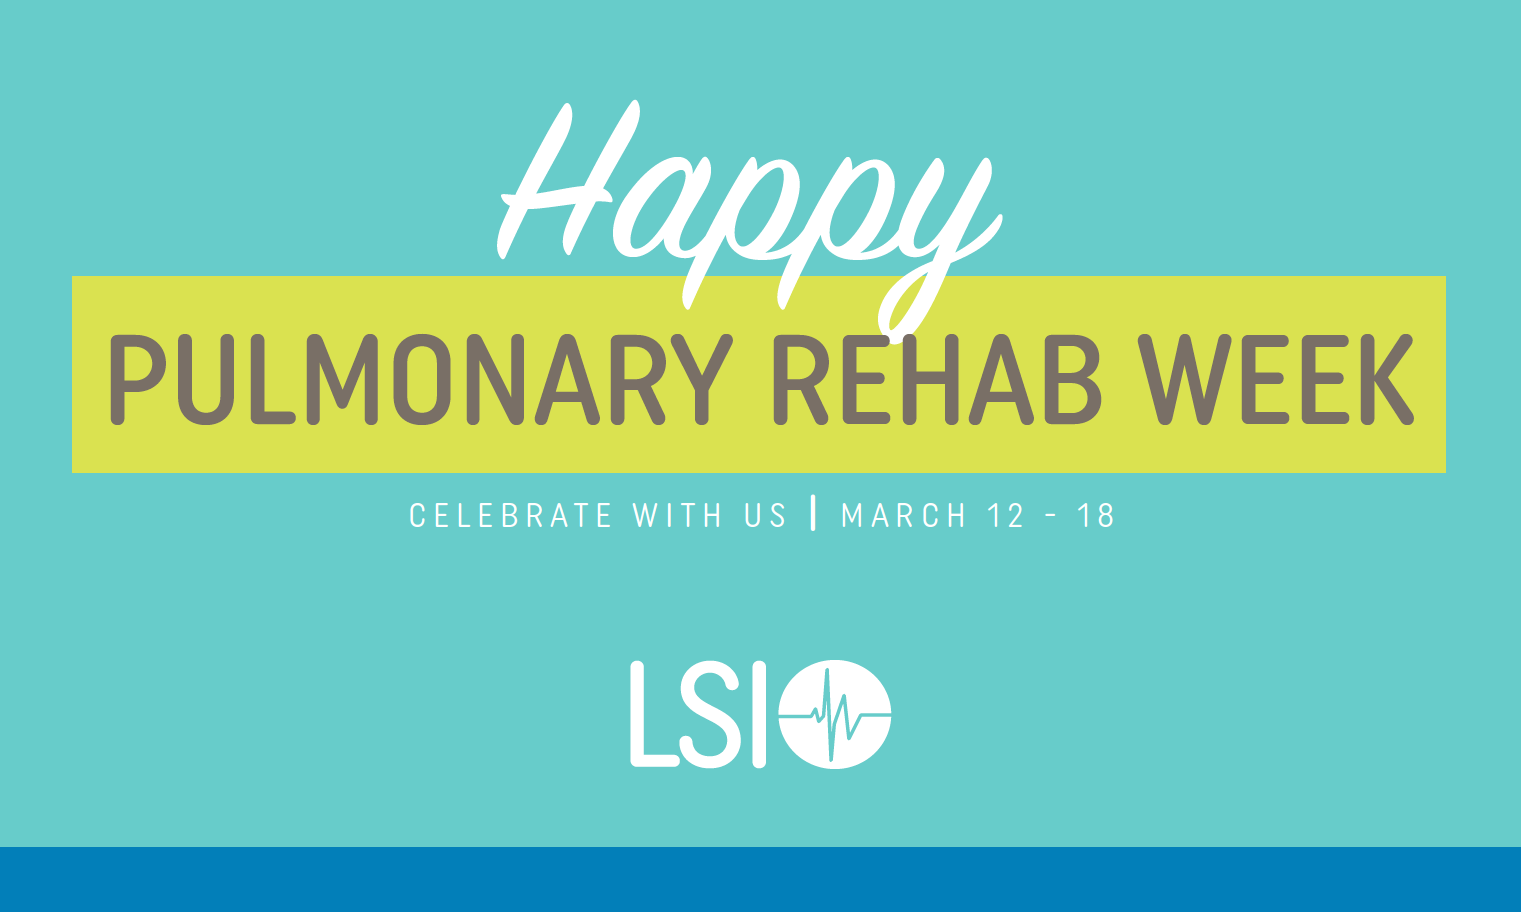 How to Celebrate Pulmonary Rehab Week | March 12-18, 2017